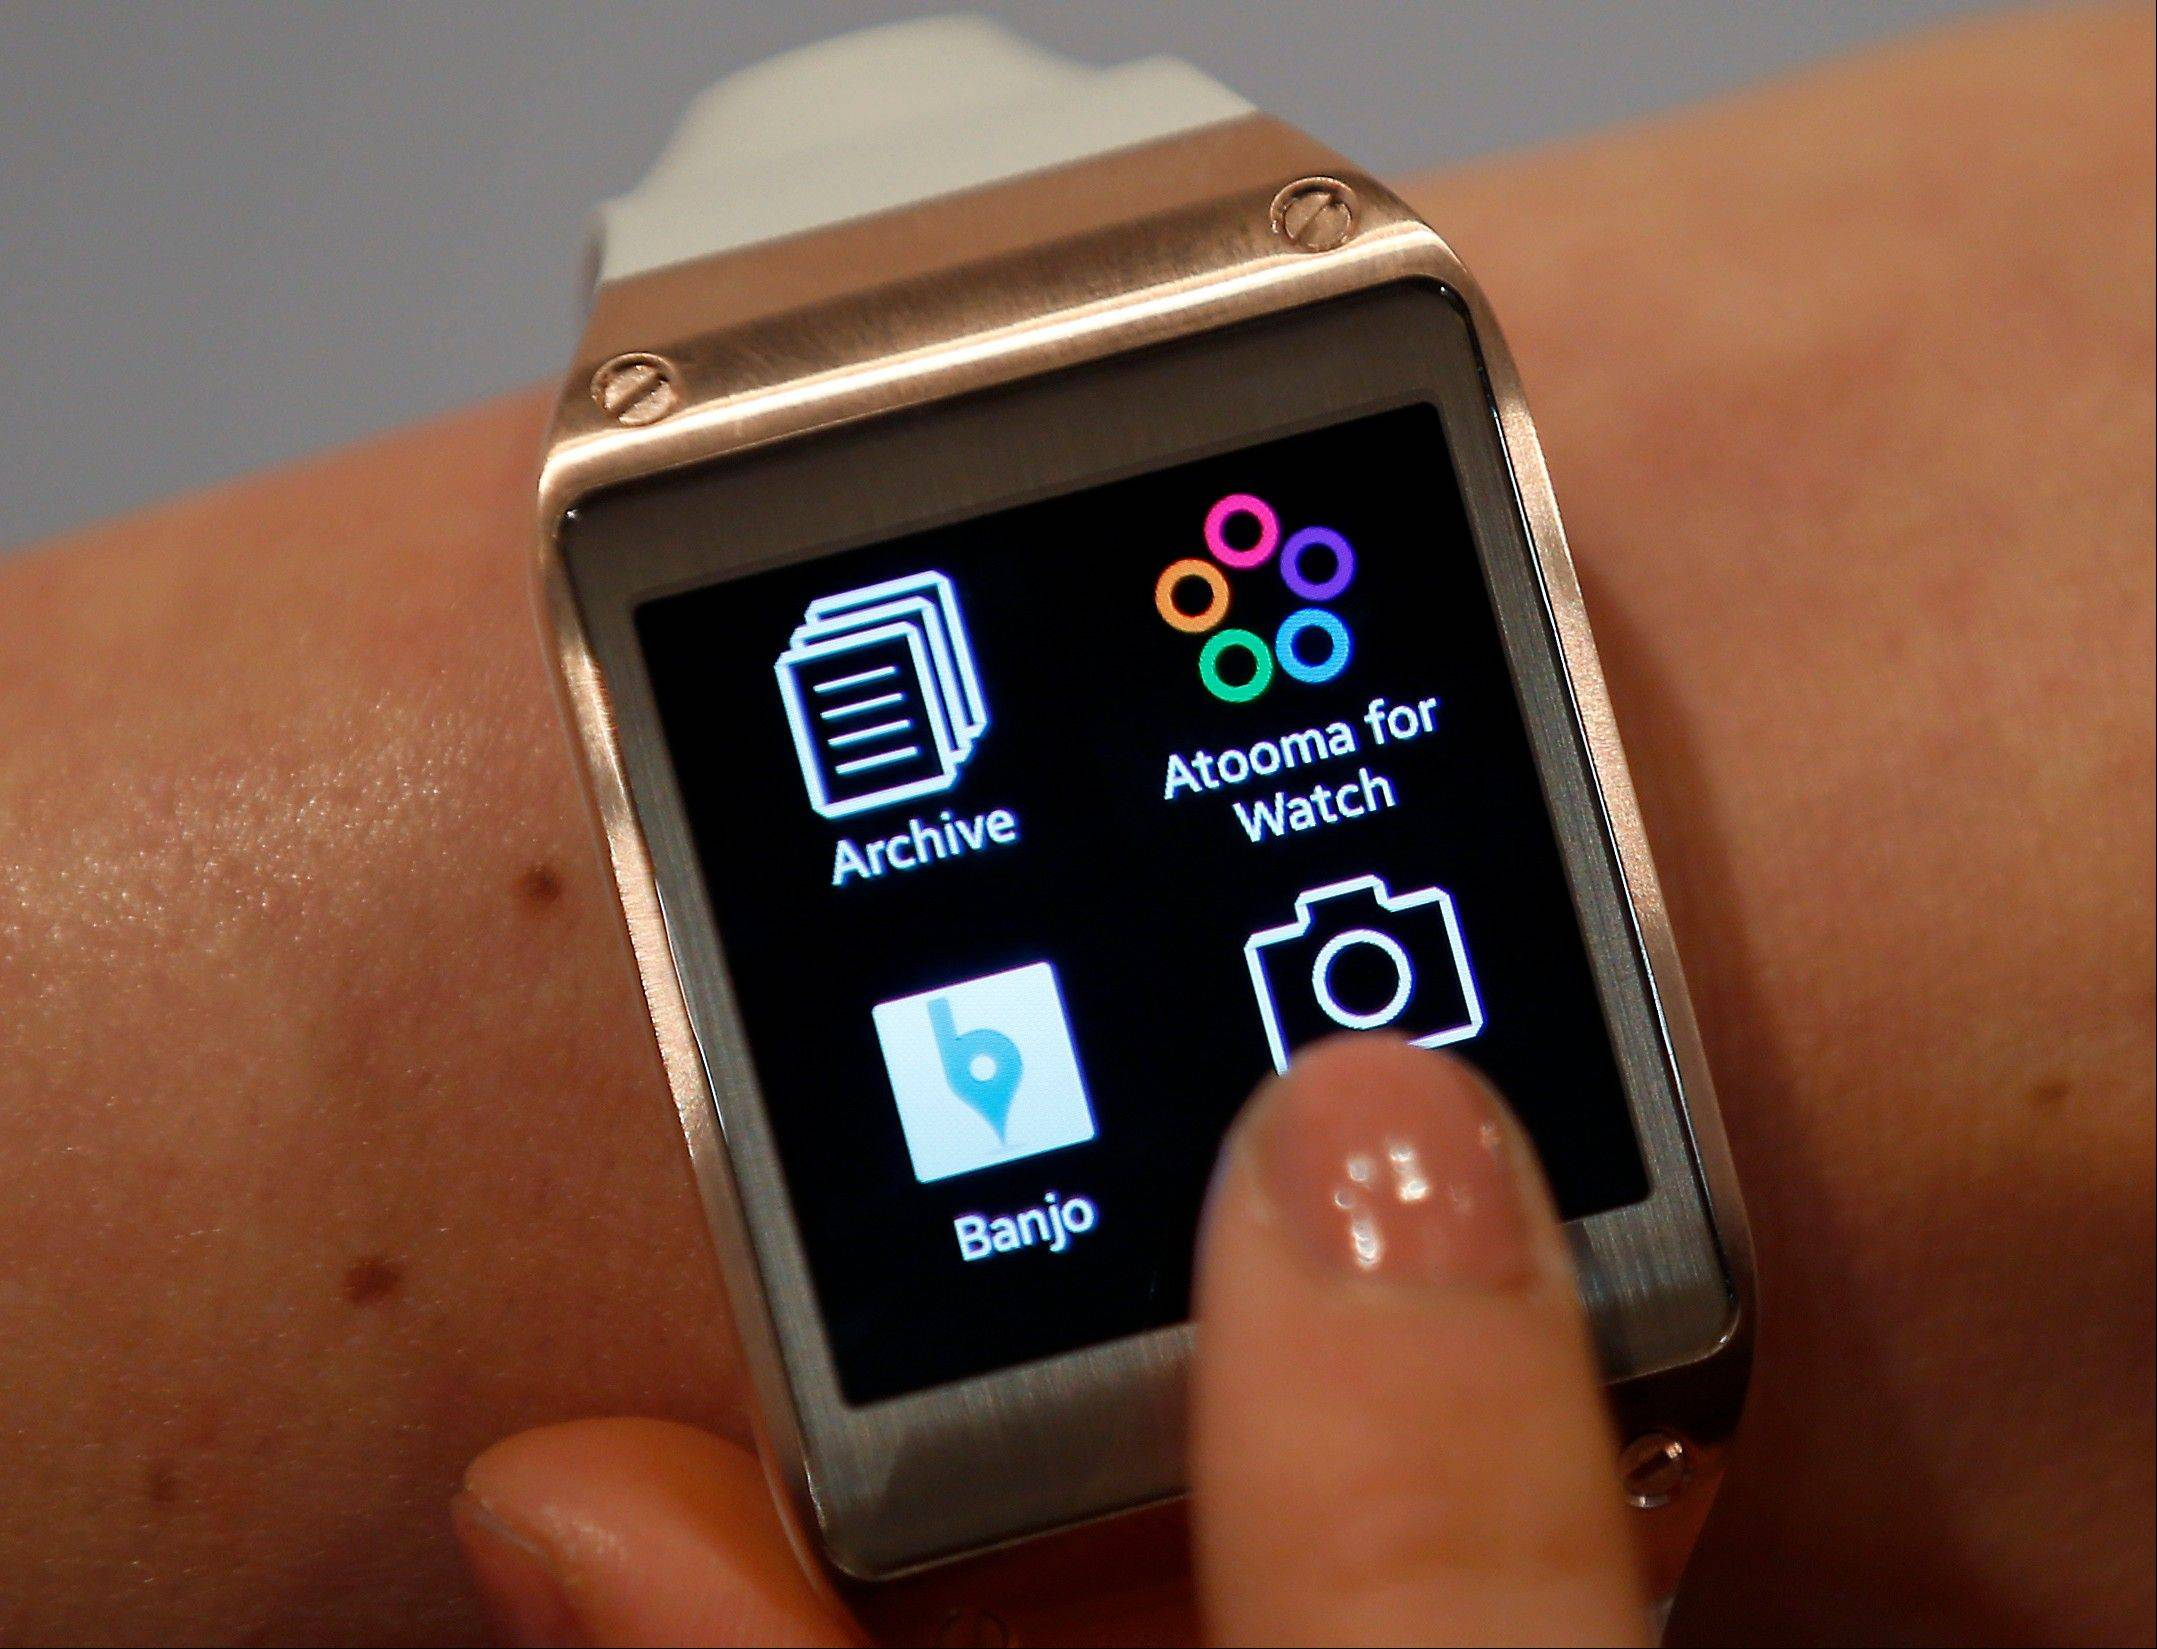 A model touches the screen of a Samsung Galaxy Gear smartwatch in Berlin, Germany. The so-called smartwatch is what some technology analysts believe could become this year's must-have holiday gift.